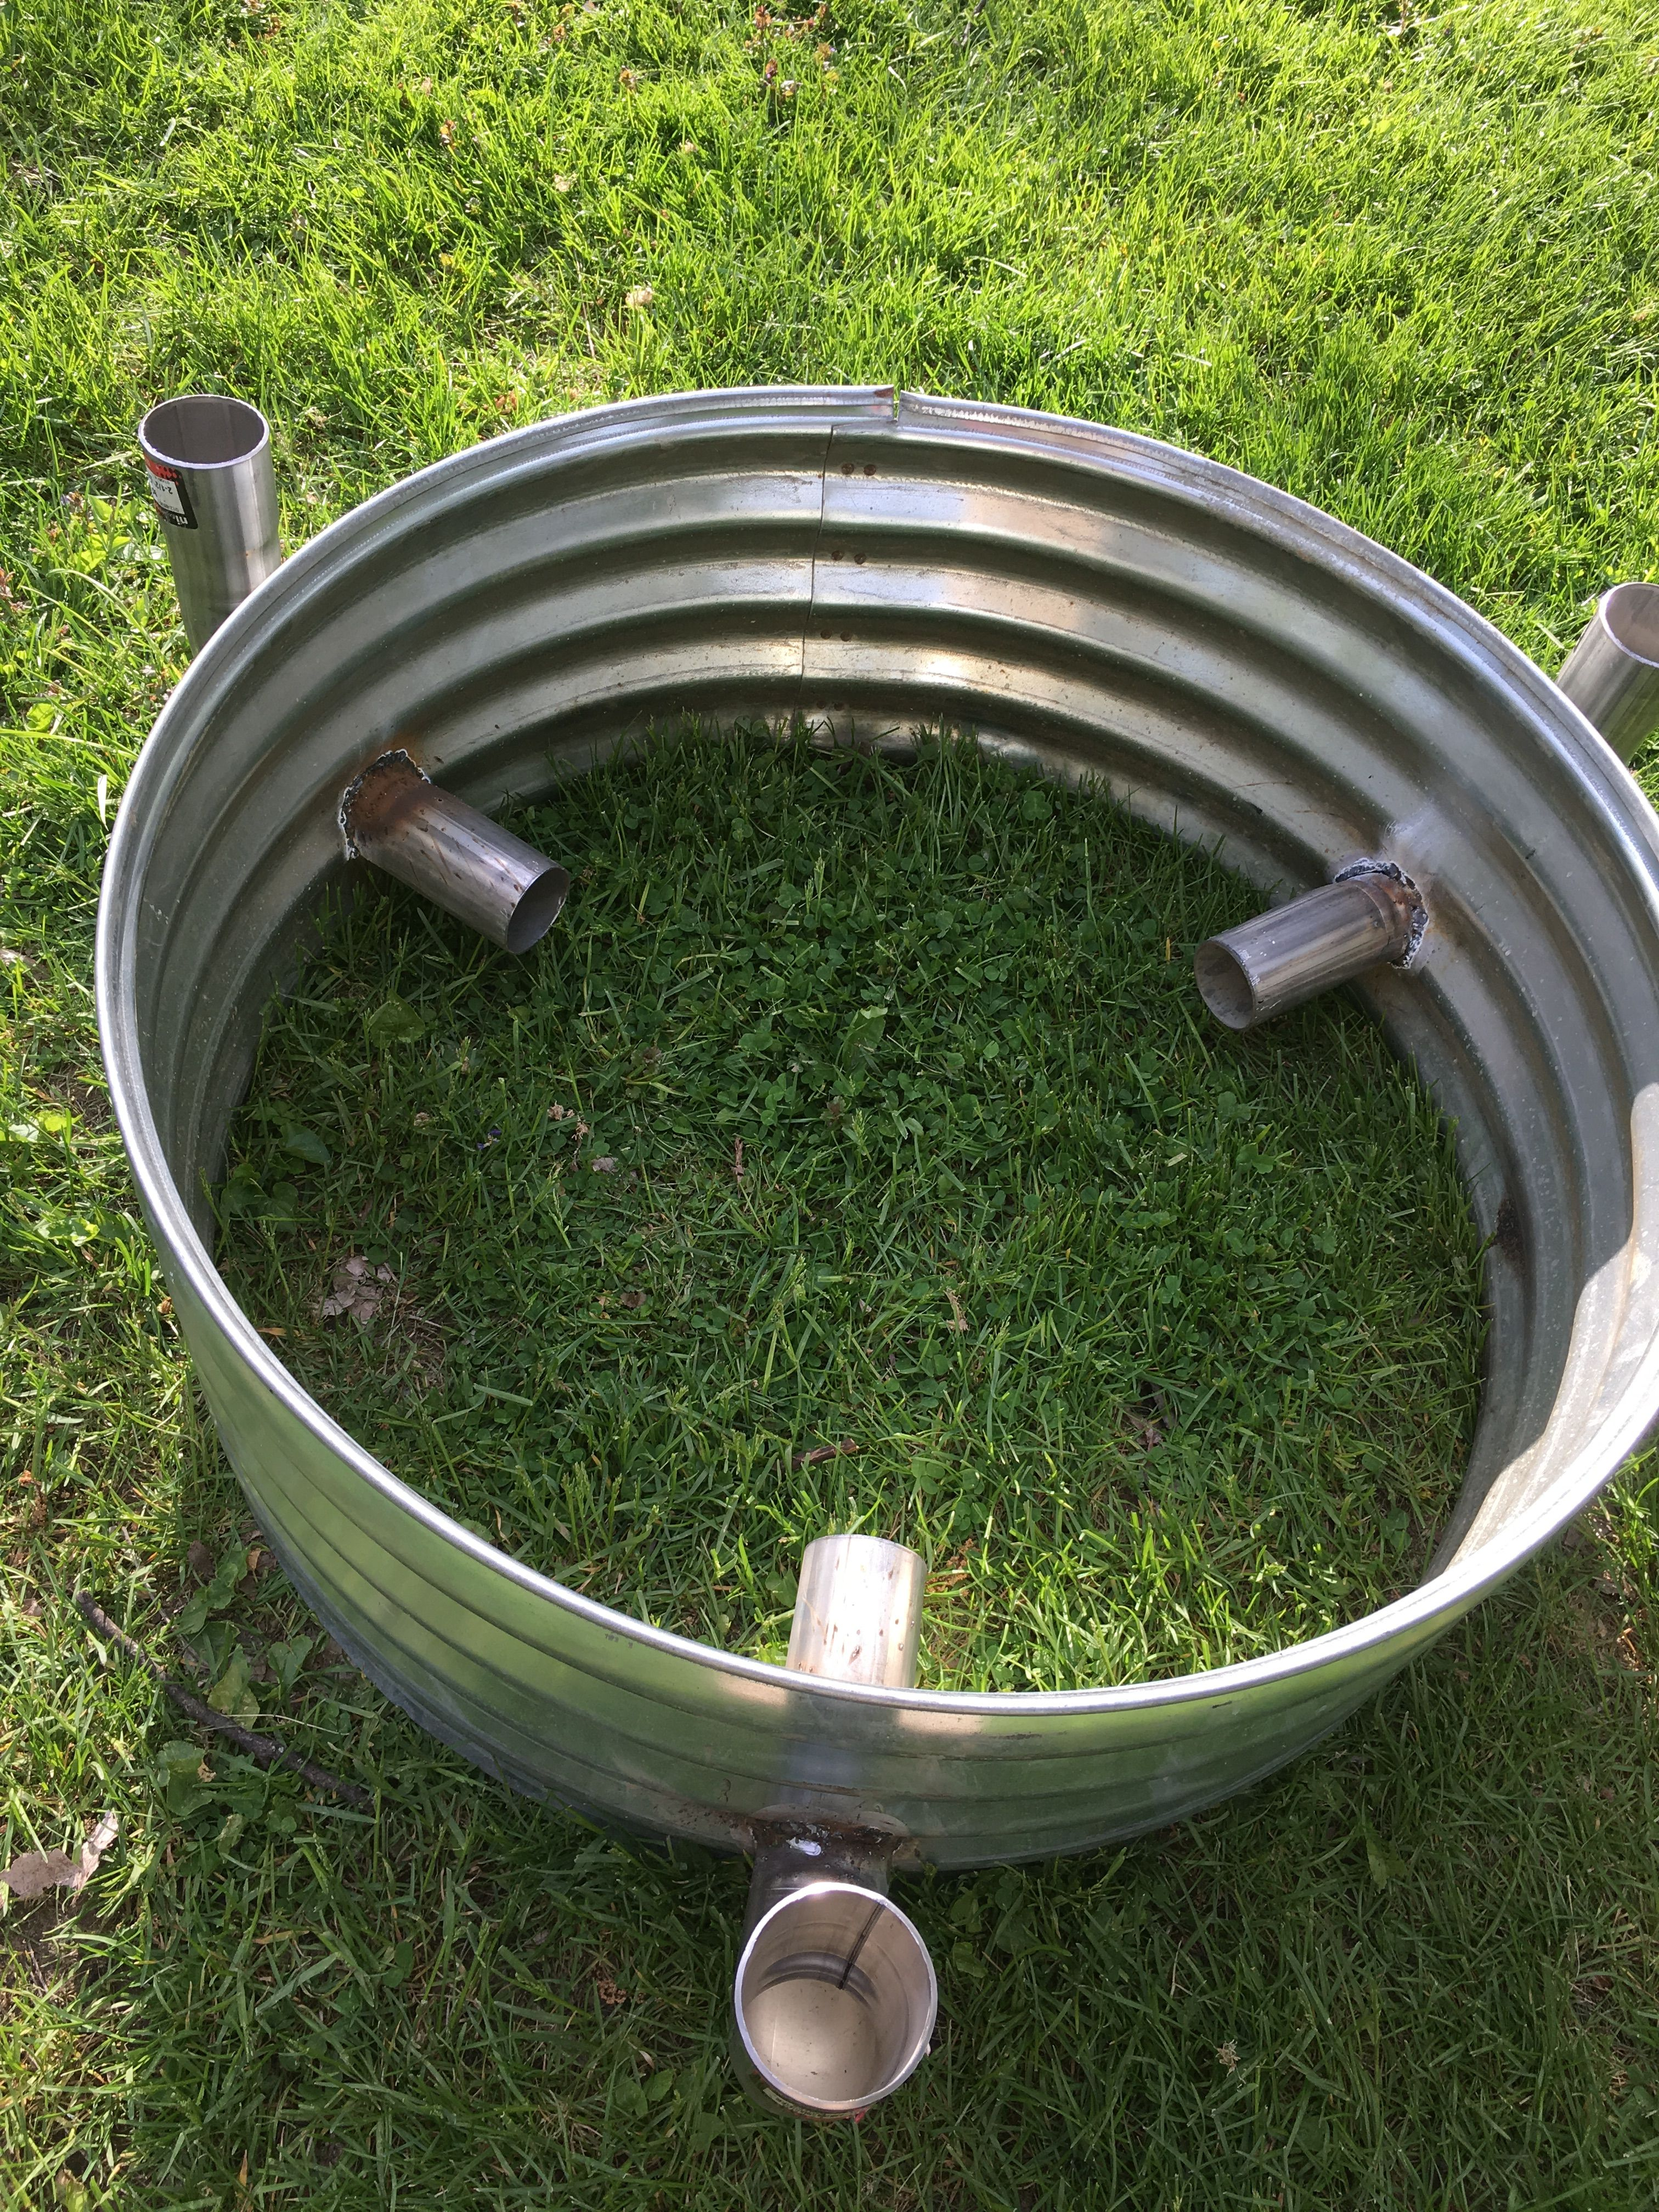 """30"""" Fire Pit Ring $38 Ace Hardware • (3) 2 1/2"""" automotive ... on Ace Hardware Fire Pit id=66806"""